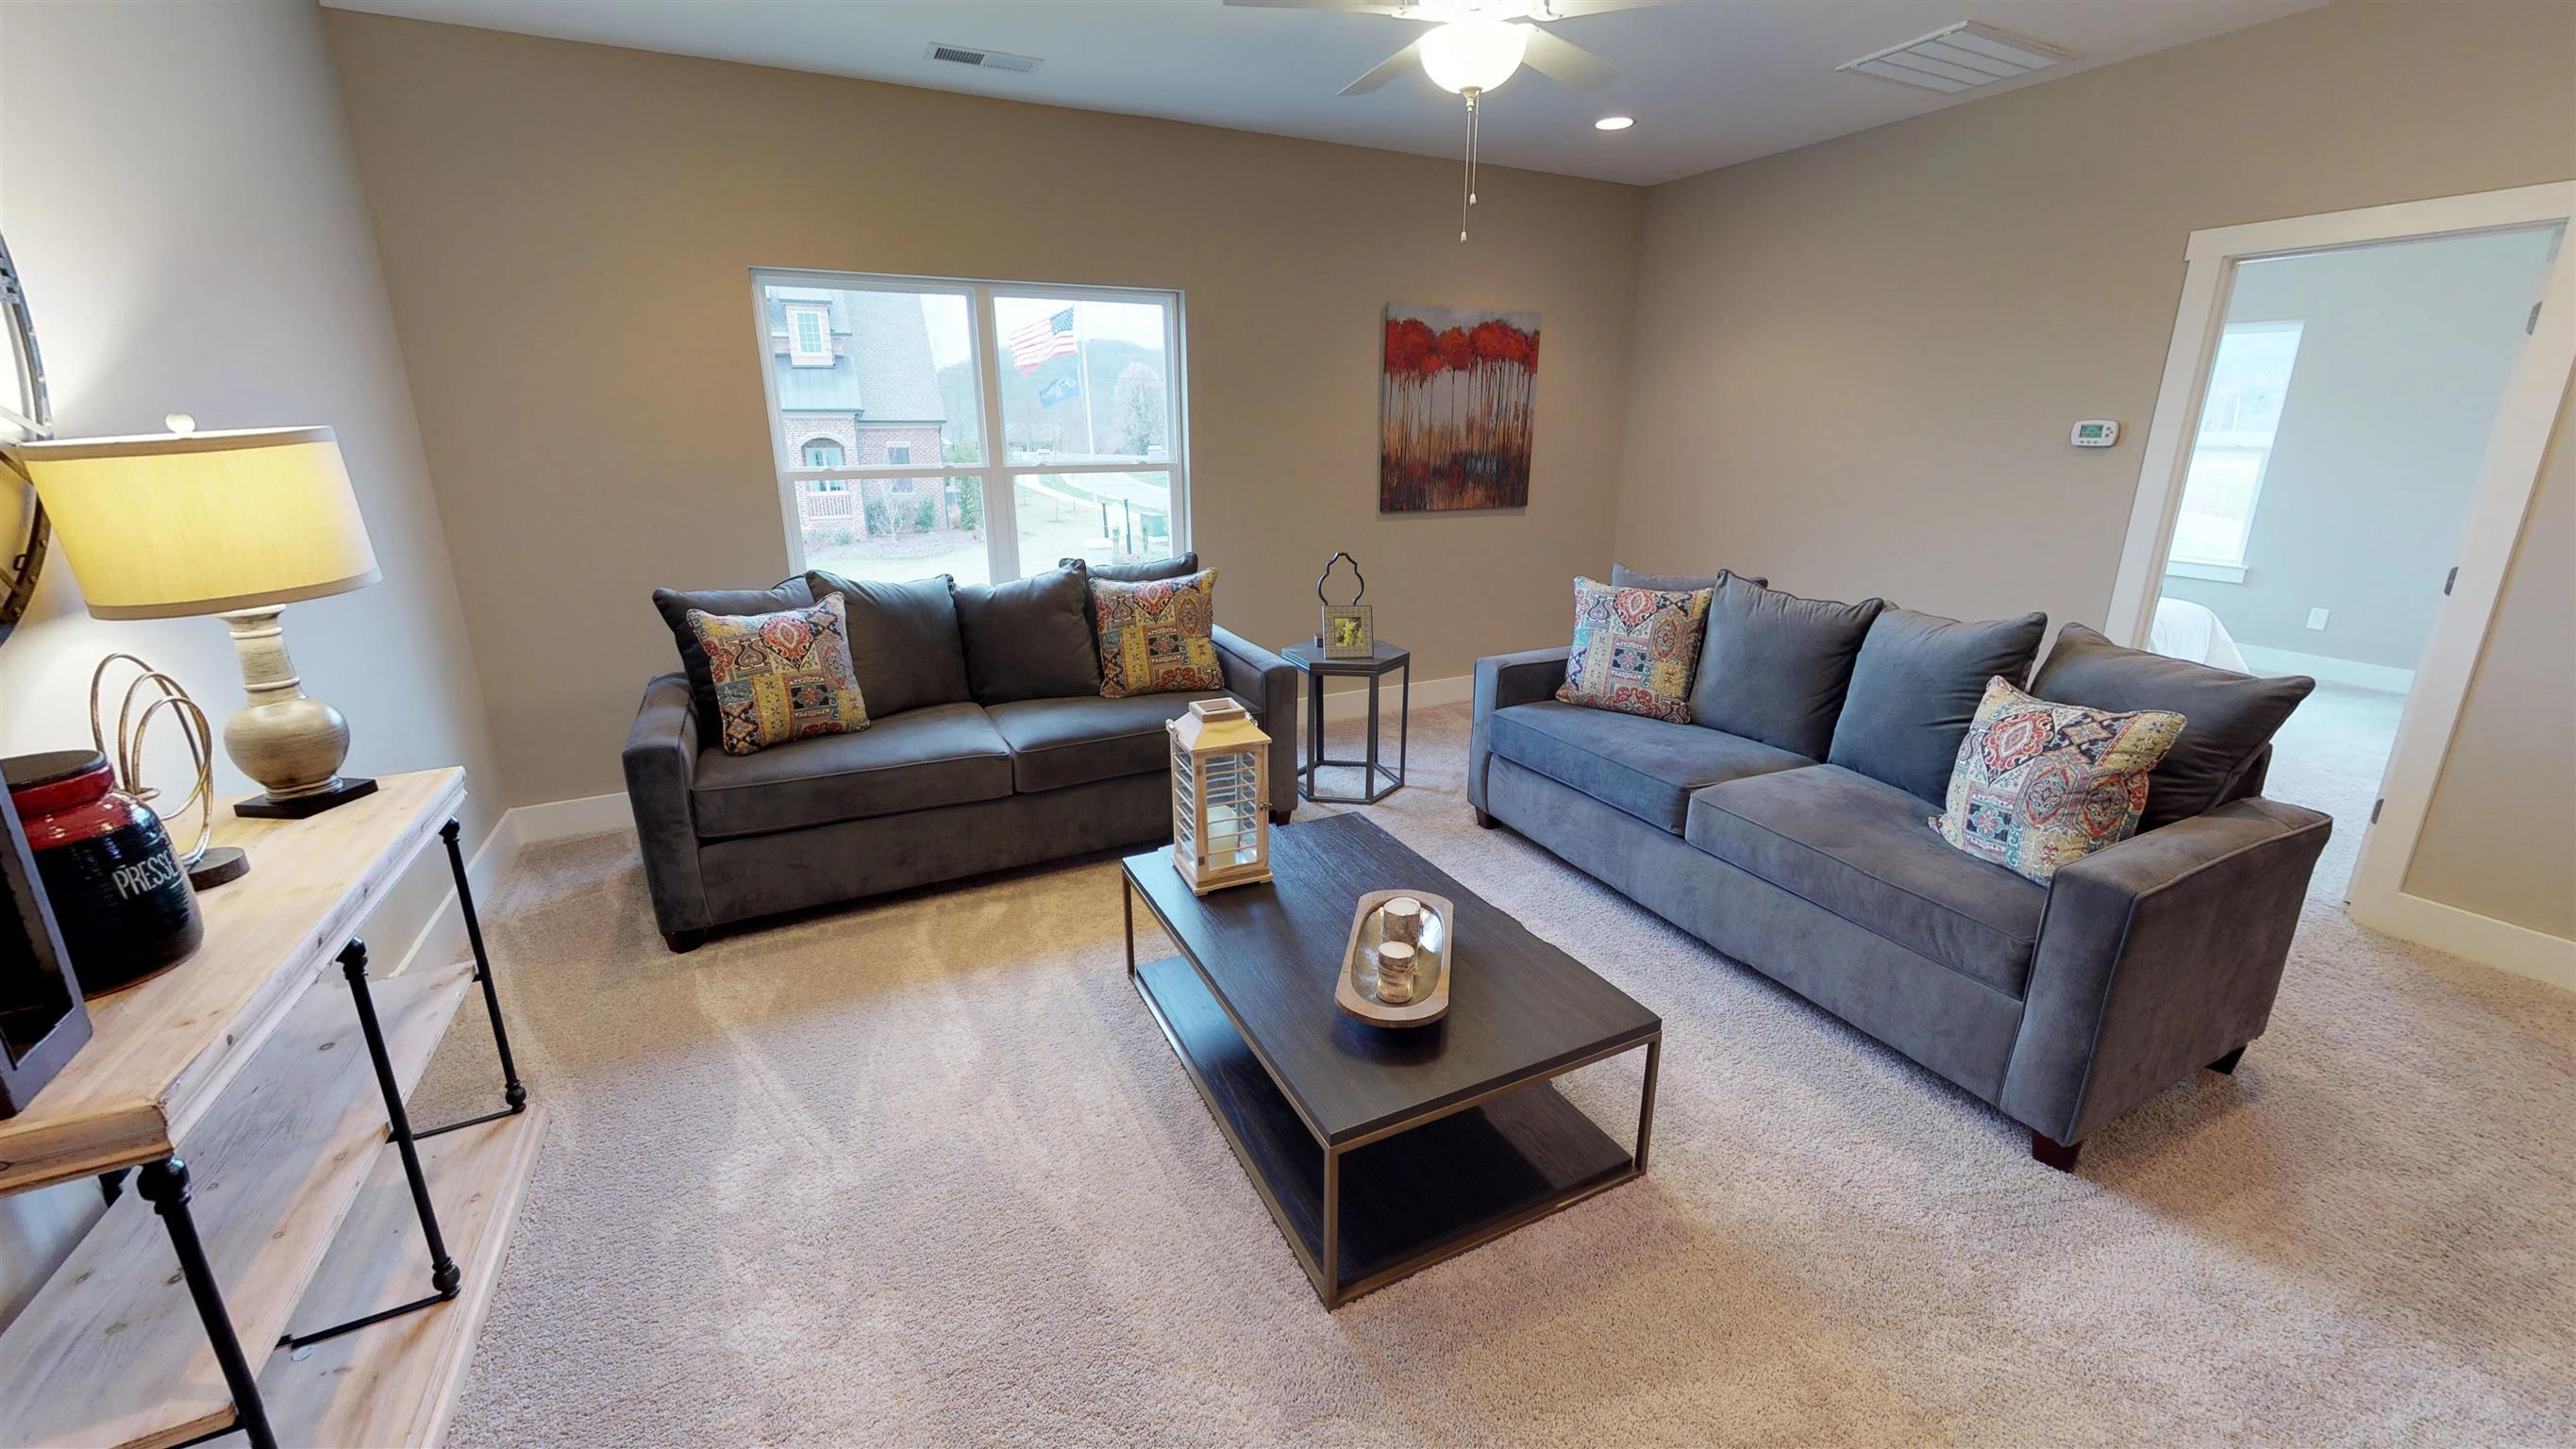 736 Vickery Park Drive 37135 - One of Nolensville Homes for Sale